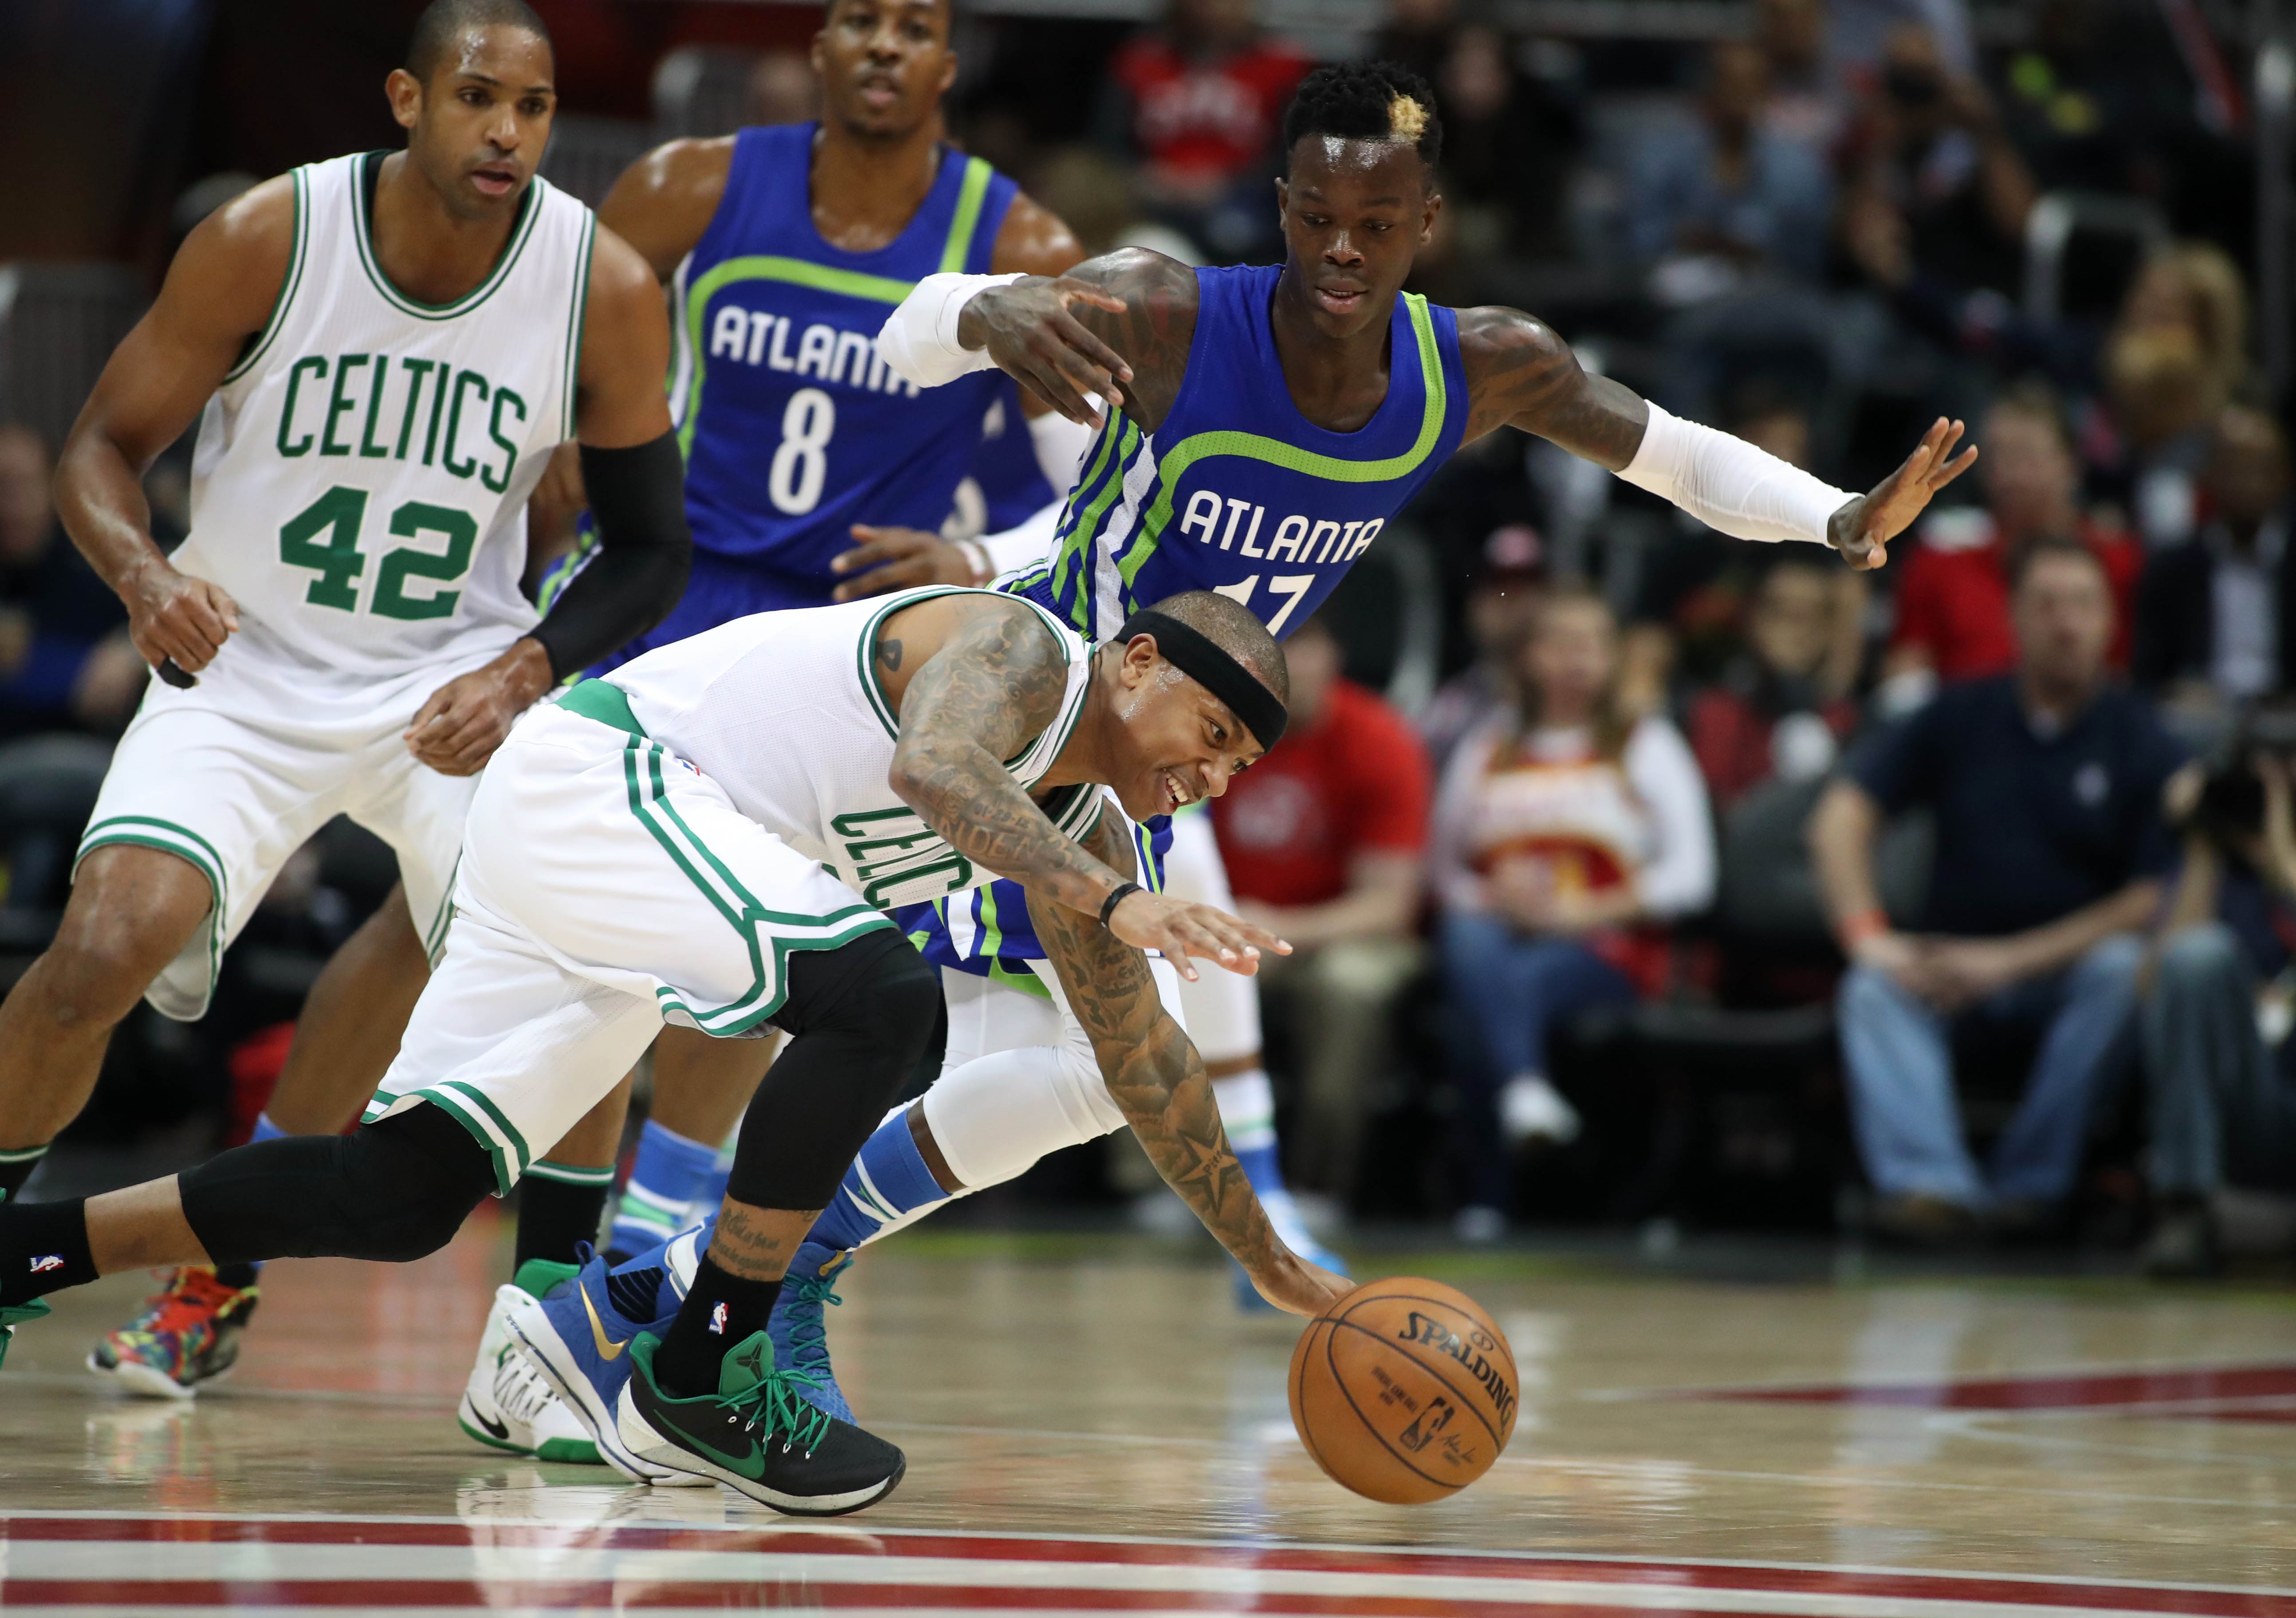 9808092-nba-boston-celtics-at-atlanta-hawks